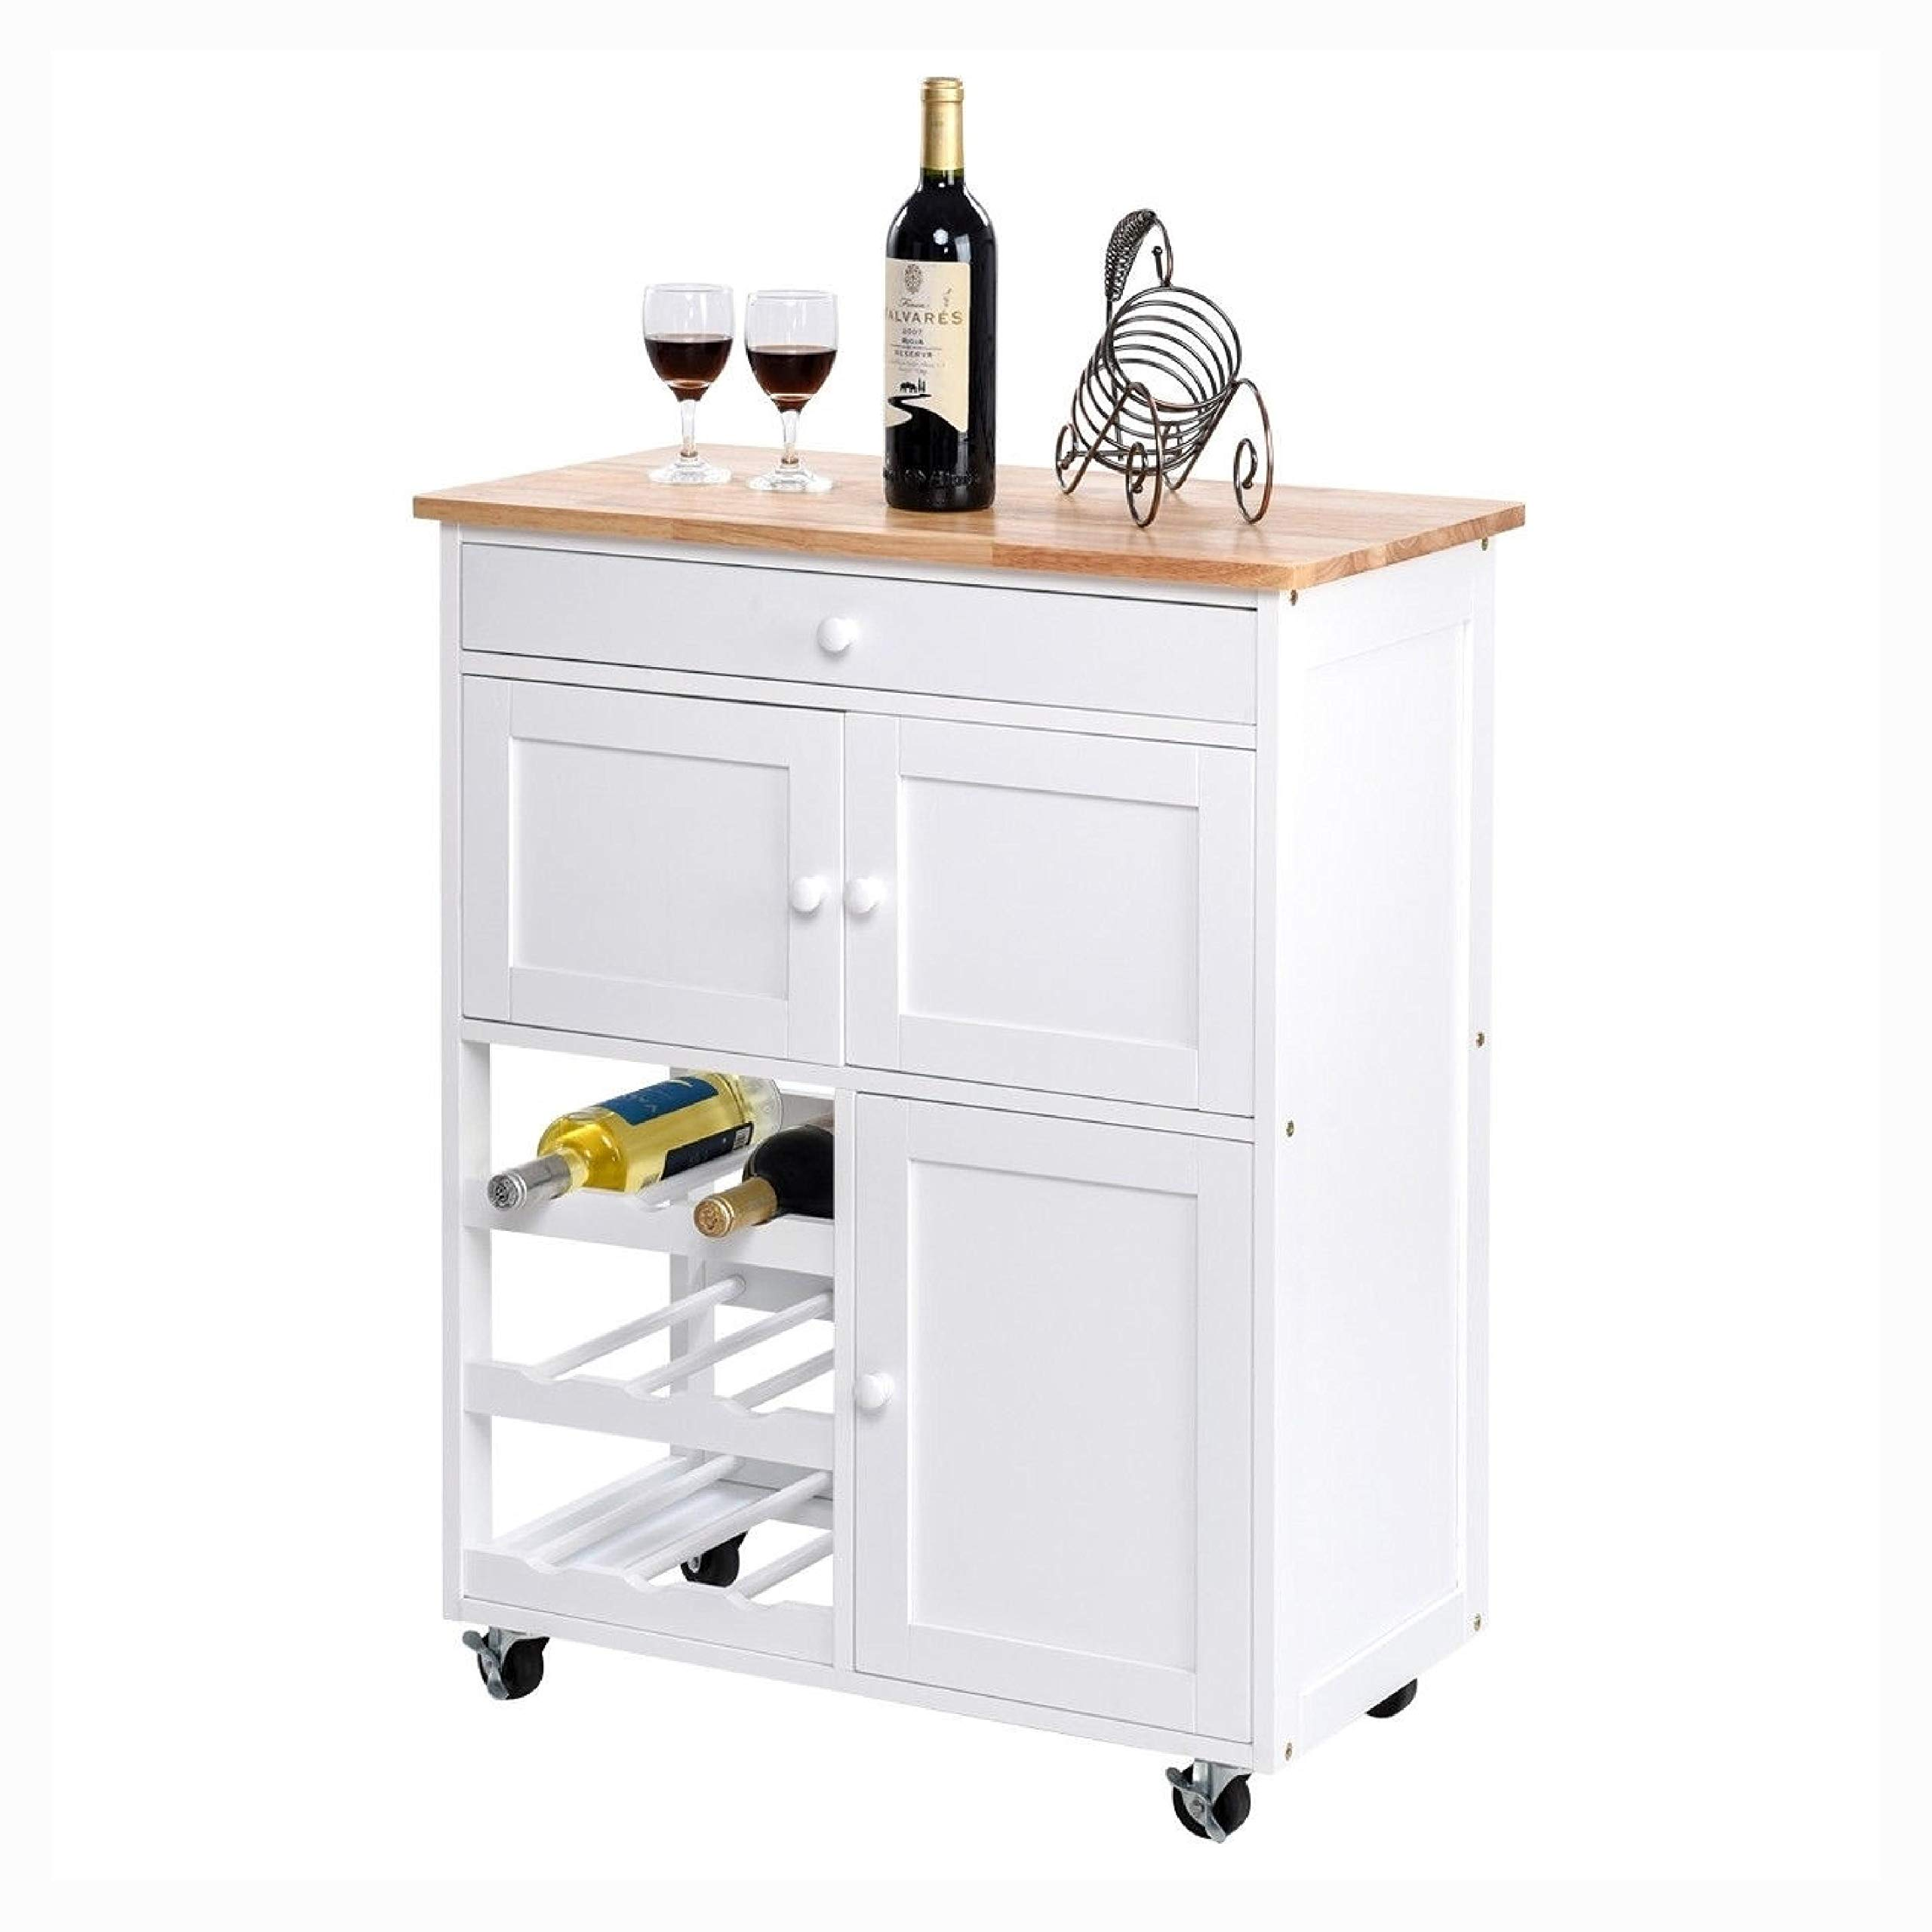 Mobile Kitchen Island Cart Cabin et with Win e Rack in White, Mobile Kitchen Island Cart Cabinet with Wine Rack in White